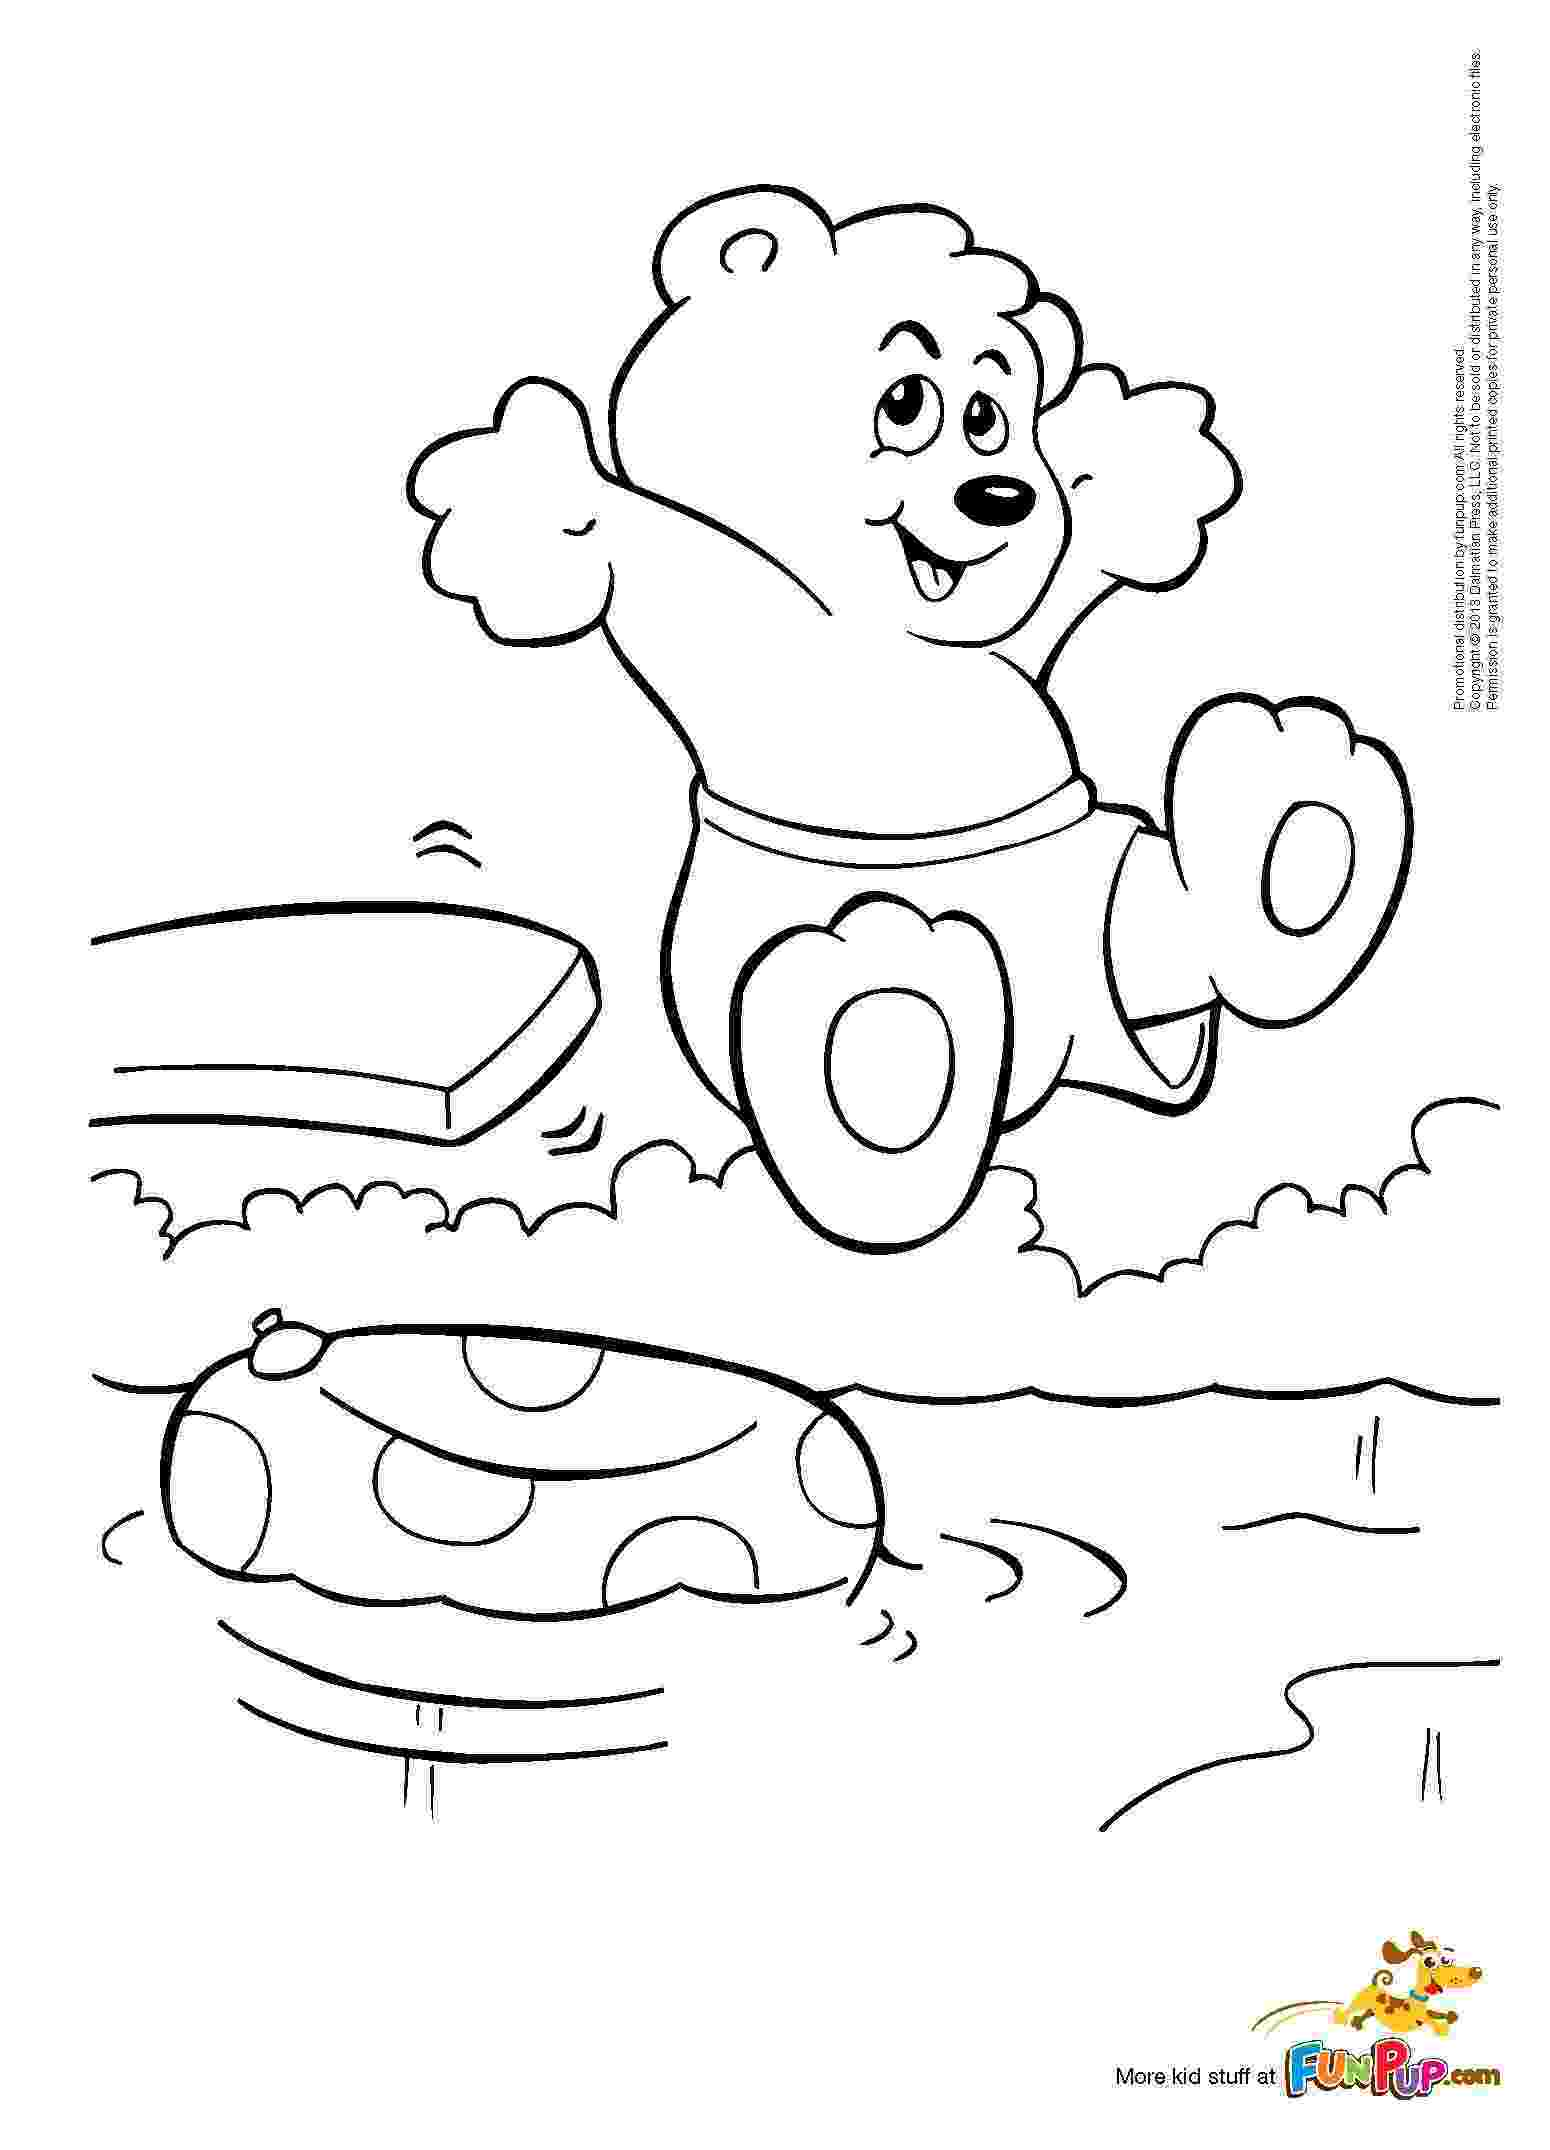 colouring pages for june month of june coloring pages coloring pages pages for colouring june